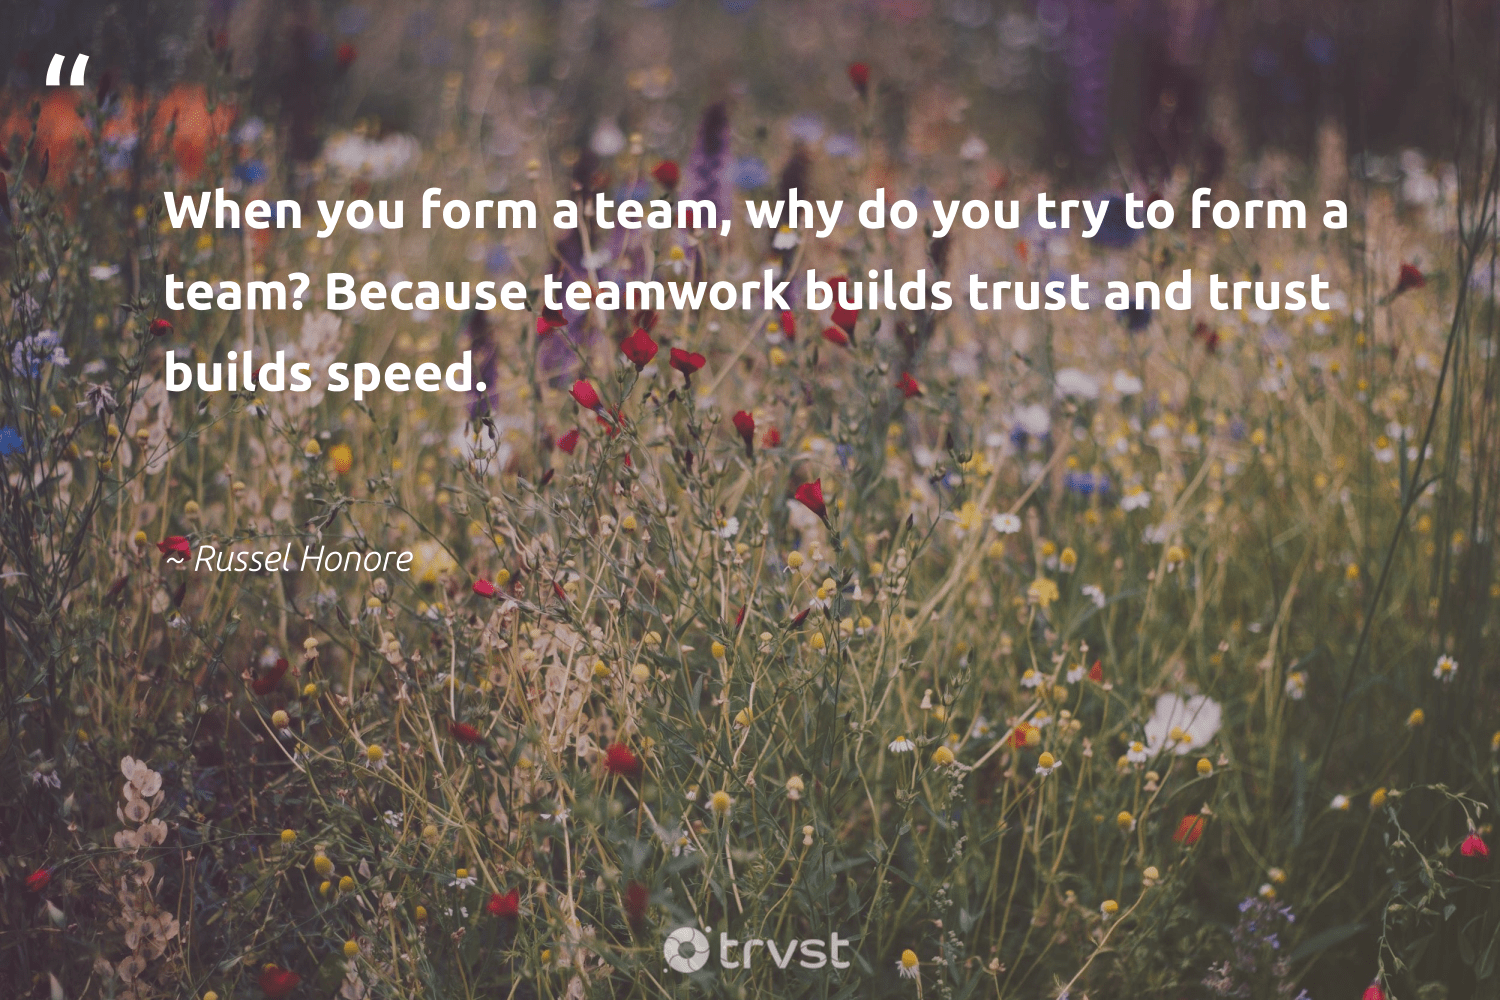 """When you form a team, why do you try to form a team? Because teamwork builds trust and trust builds speed.""  - Russel Honore #trvst #quotes #softskills #collectiveaction #nevergiveup #dogood #futureofwork #planetearthfirst #begreat #dotherightthing #dosomething #socialimpact"